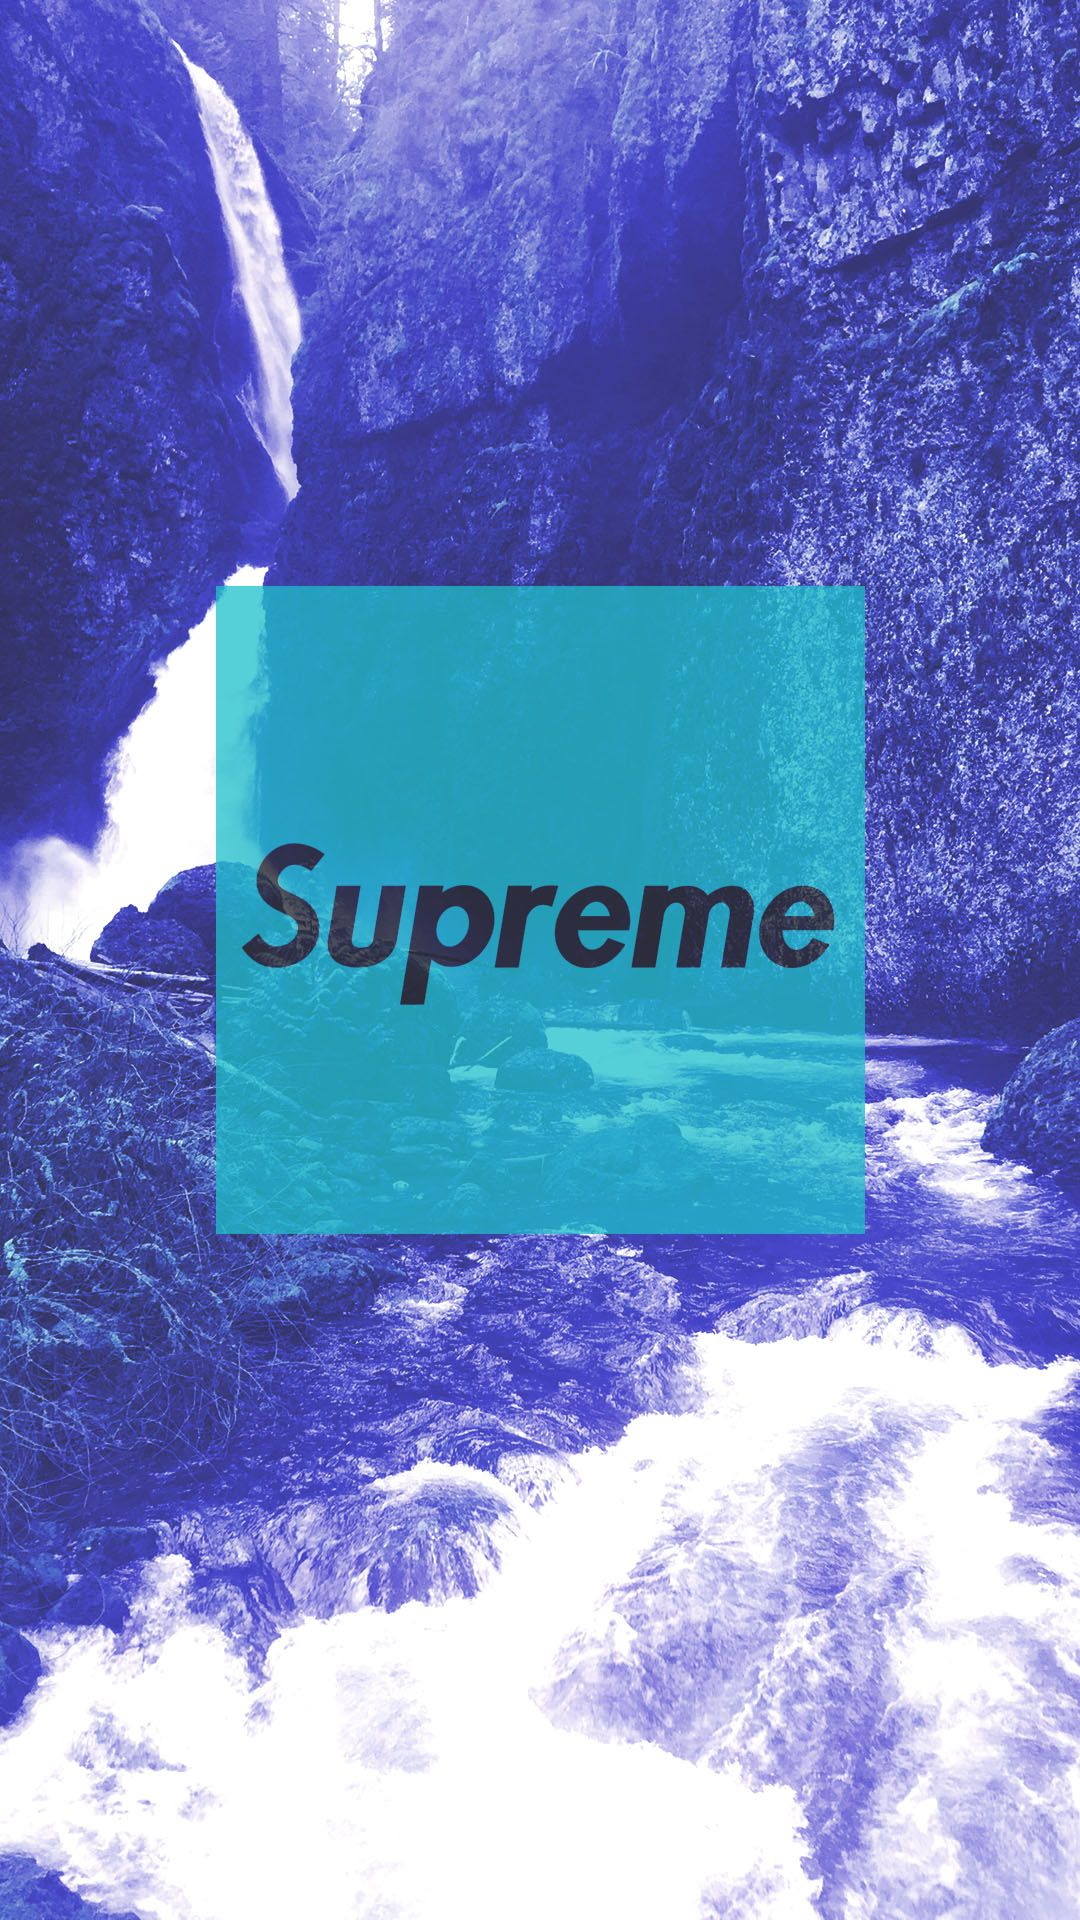 1080x1920 supreme unaltered version in comments need - Supreme wallpaper iphone 6 ...